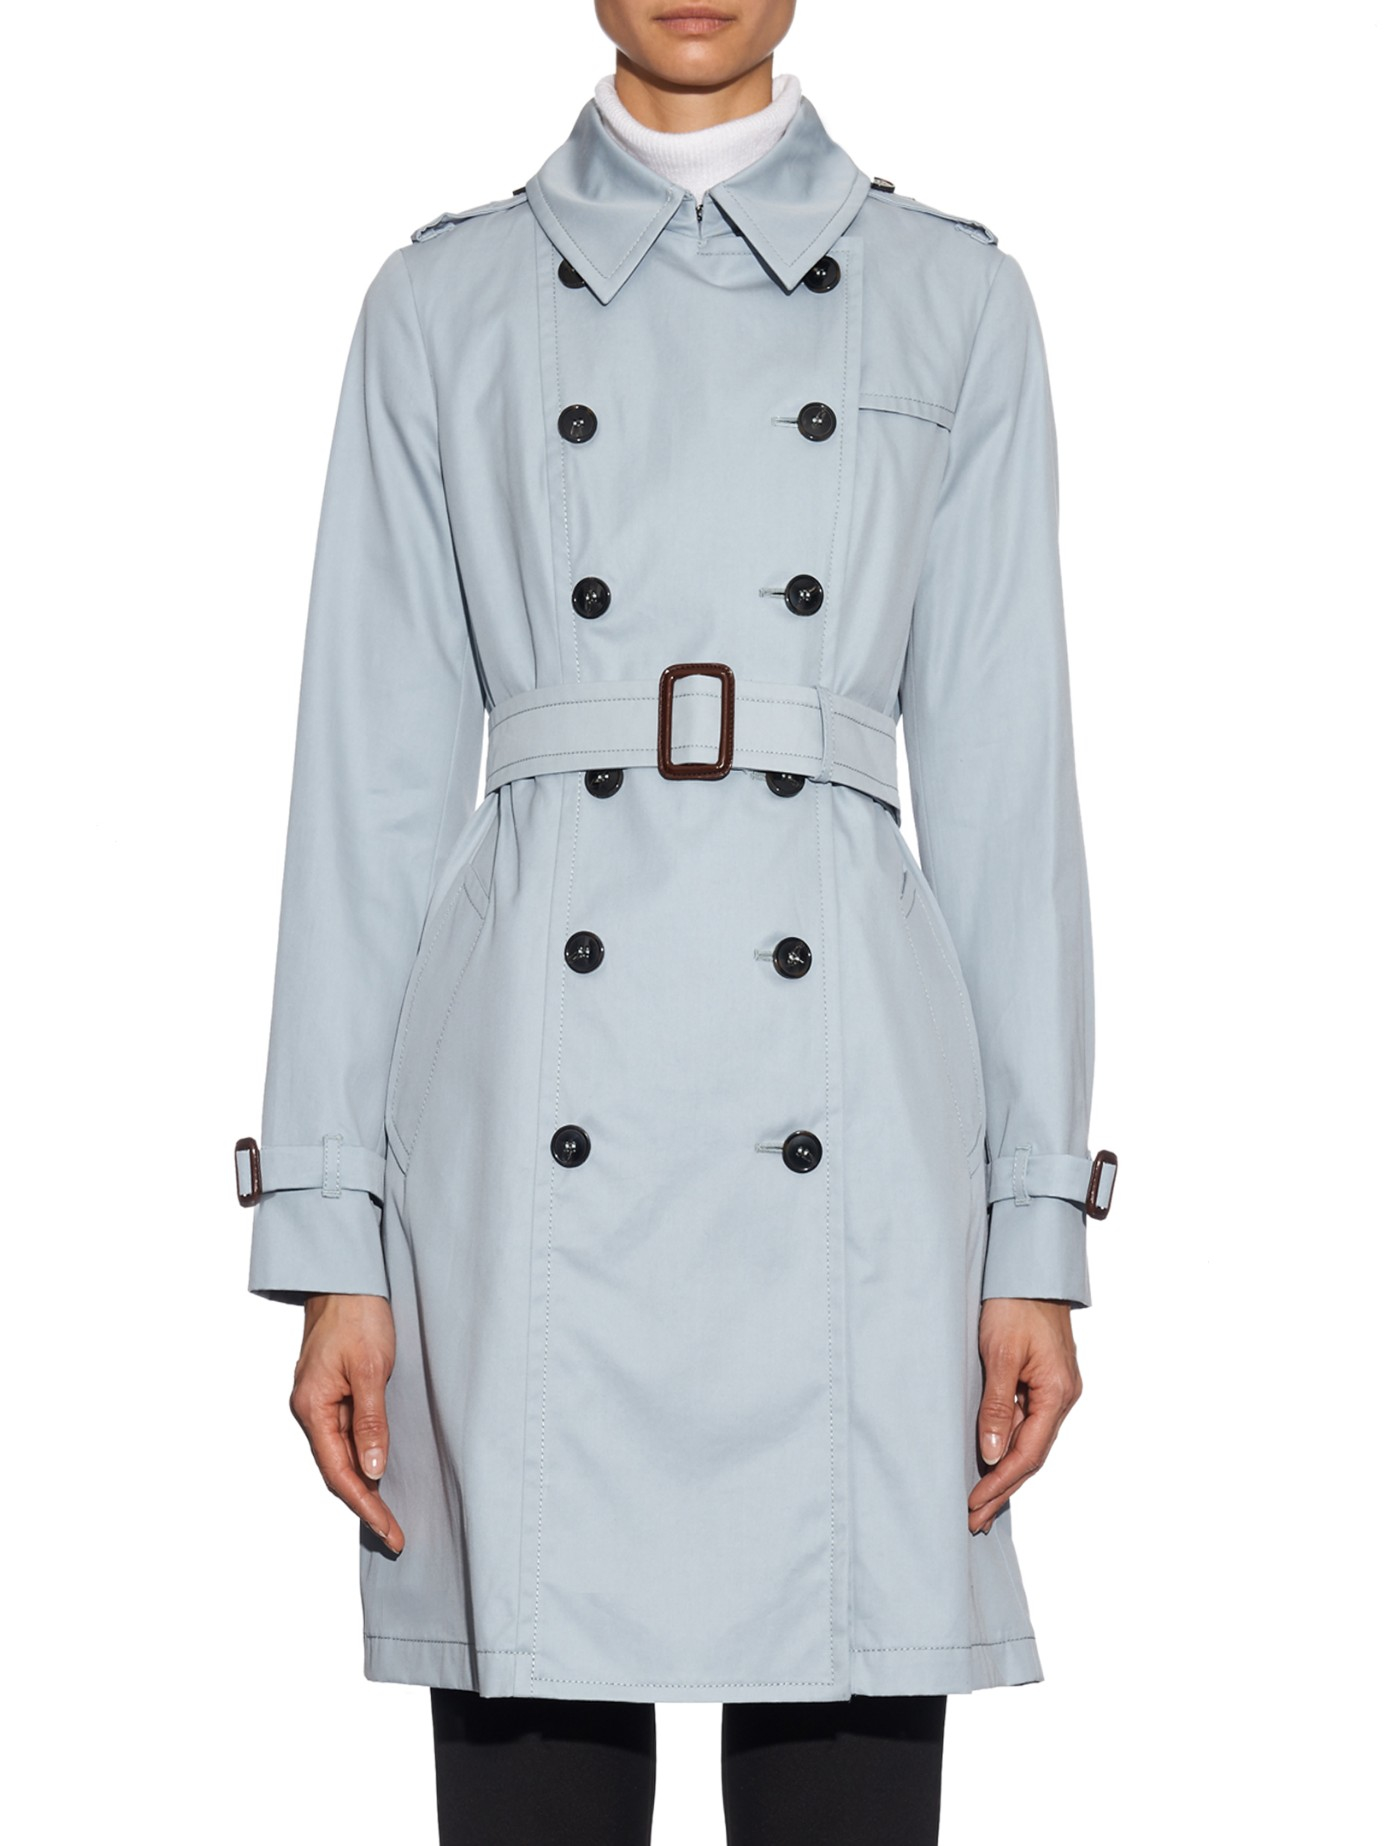 Stay prepped for showers and blustery days with this timeless Laundry by Shelli Segal trench coat. Decorated with a darling belt and flared back, this elegant light blue coat will help you make the most of storms no matter the season.